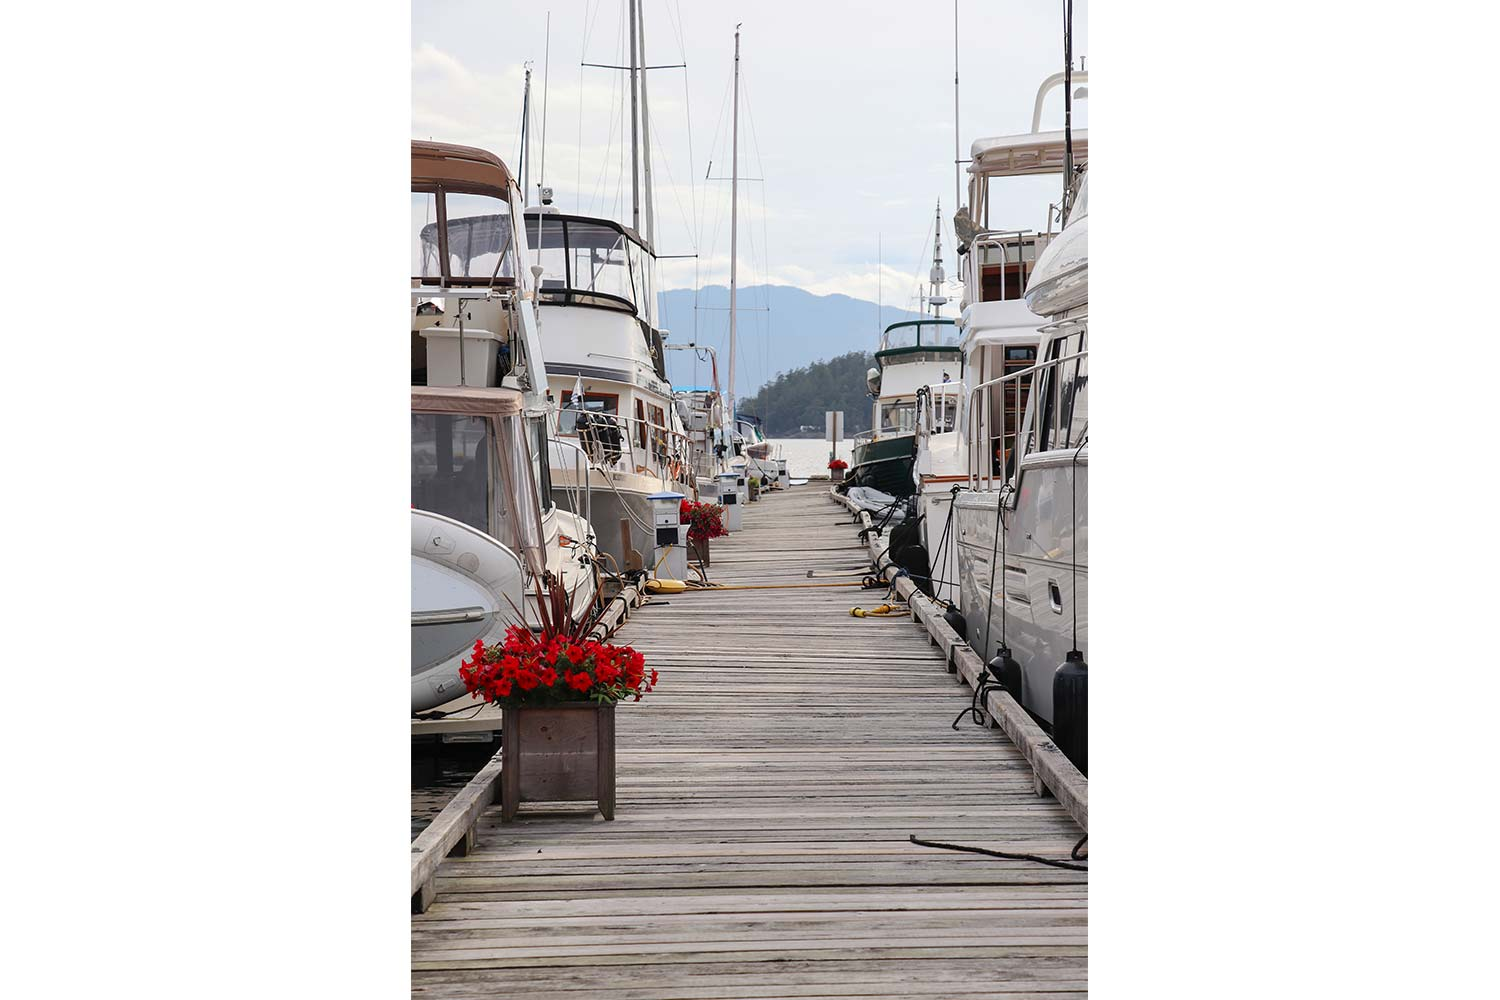 Boats moored up on either side of the Dock at John Henry's Pender Harbour Boat Moorage.